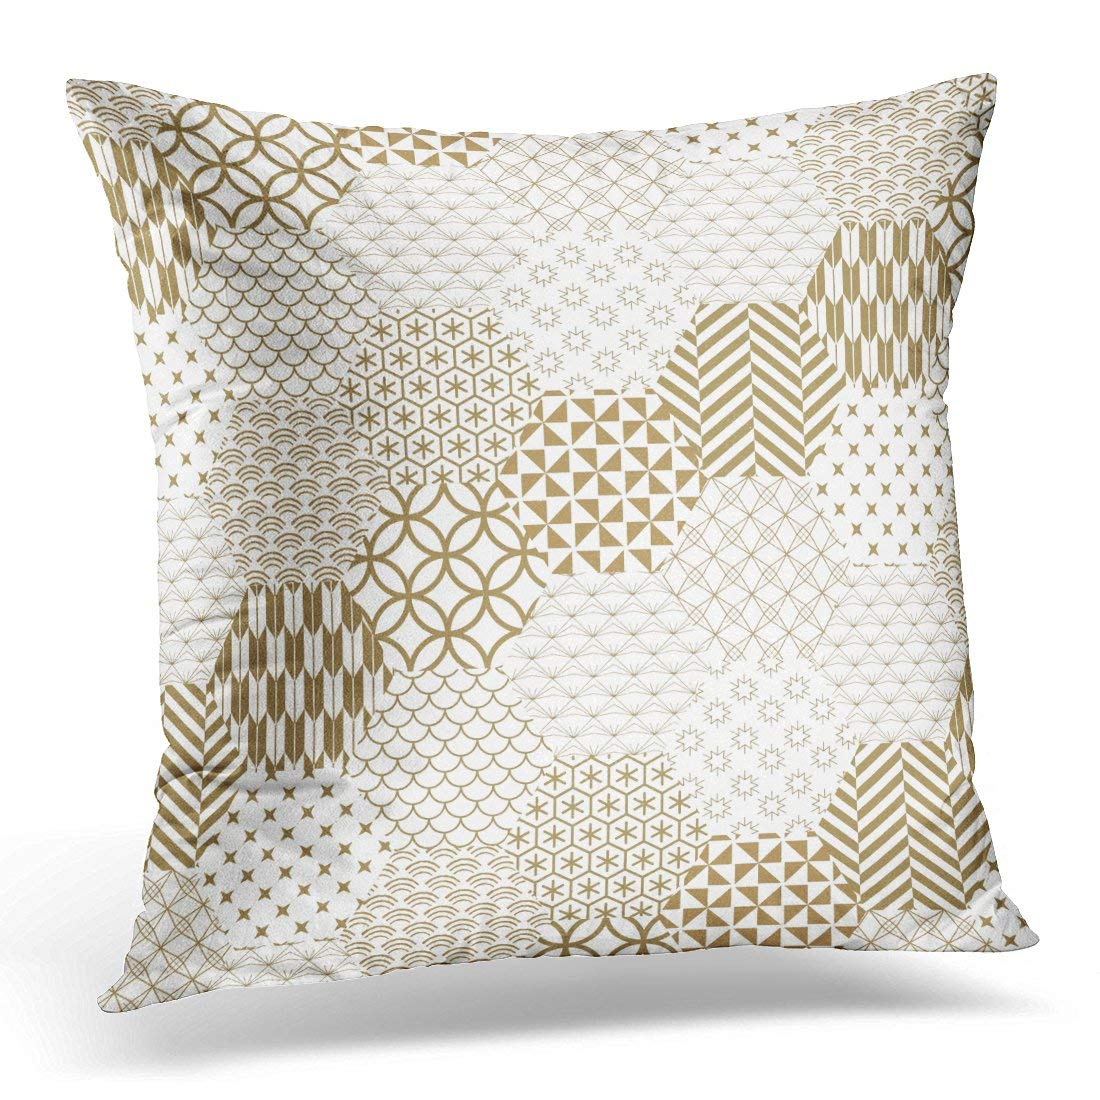 USART White Japanese Gold and The Exquisitely Delicate Side of Traditional Woodwork Rooms to Create Stunning Pillows case 18x18 Inches Home Decor Sofa Cushion Cover